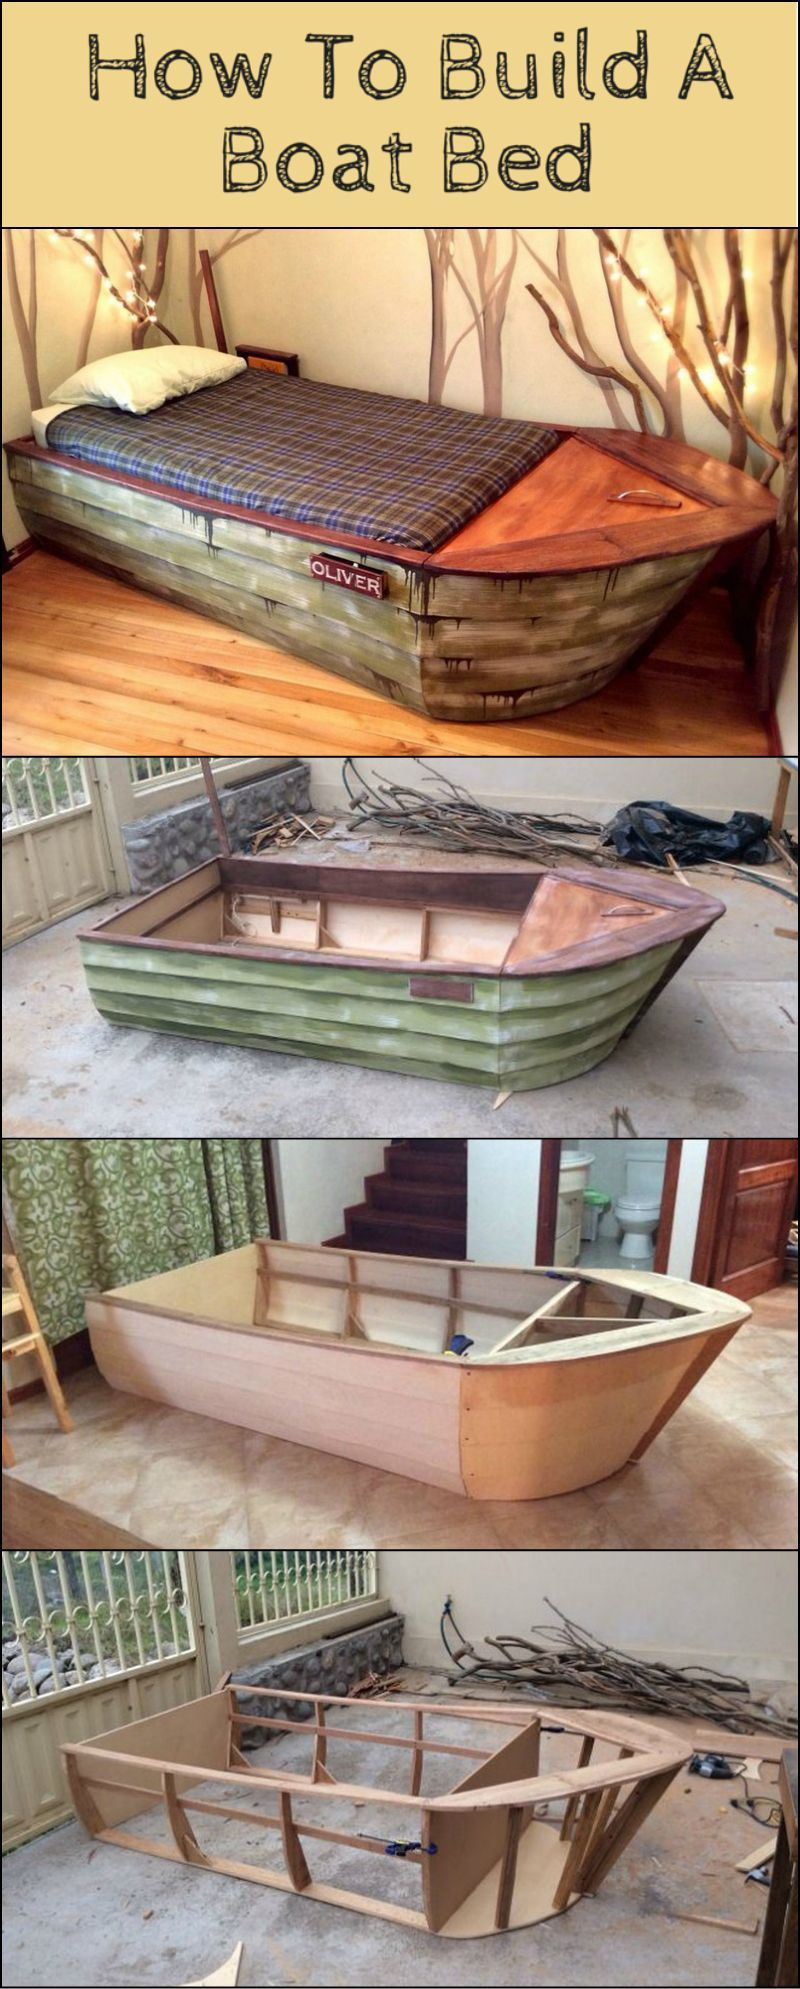 Boat Beds on Pinterest